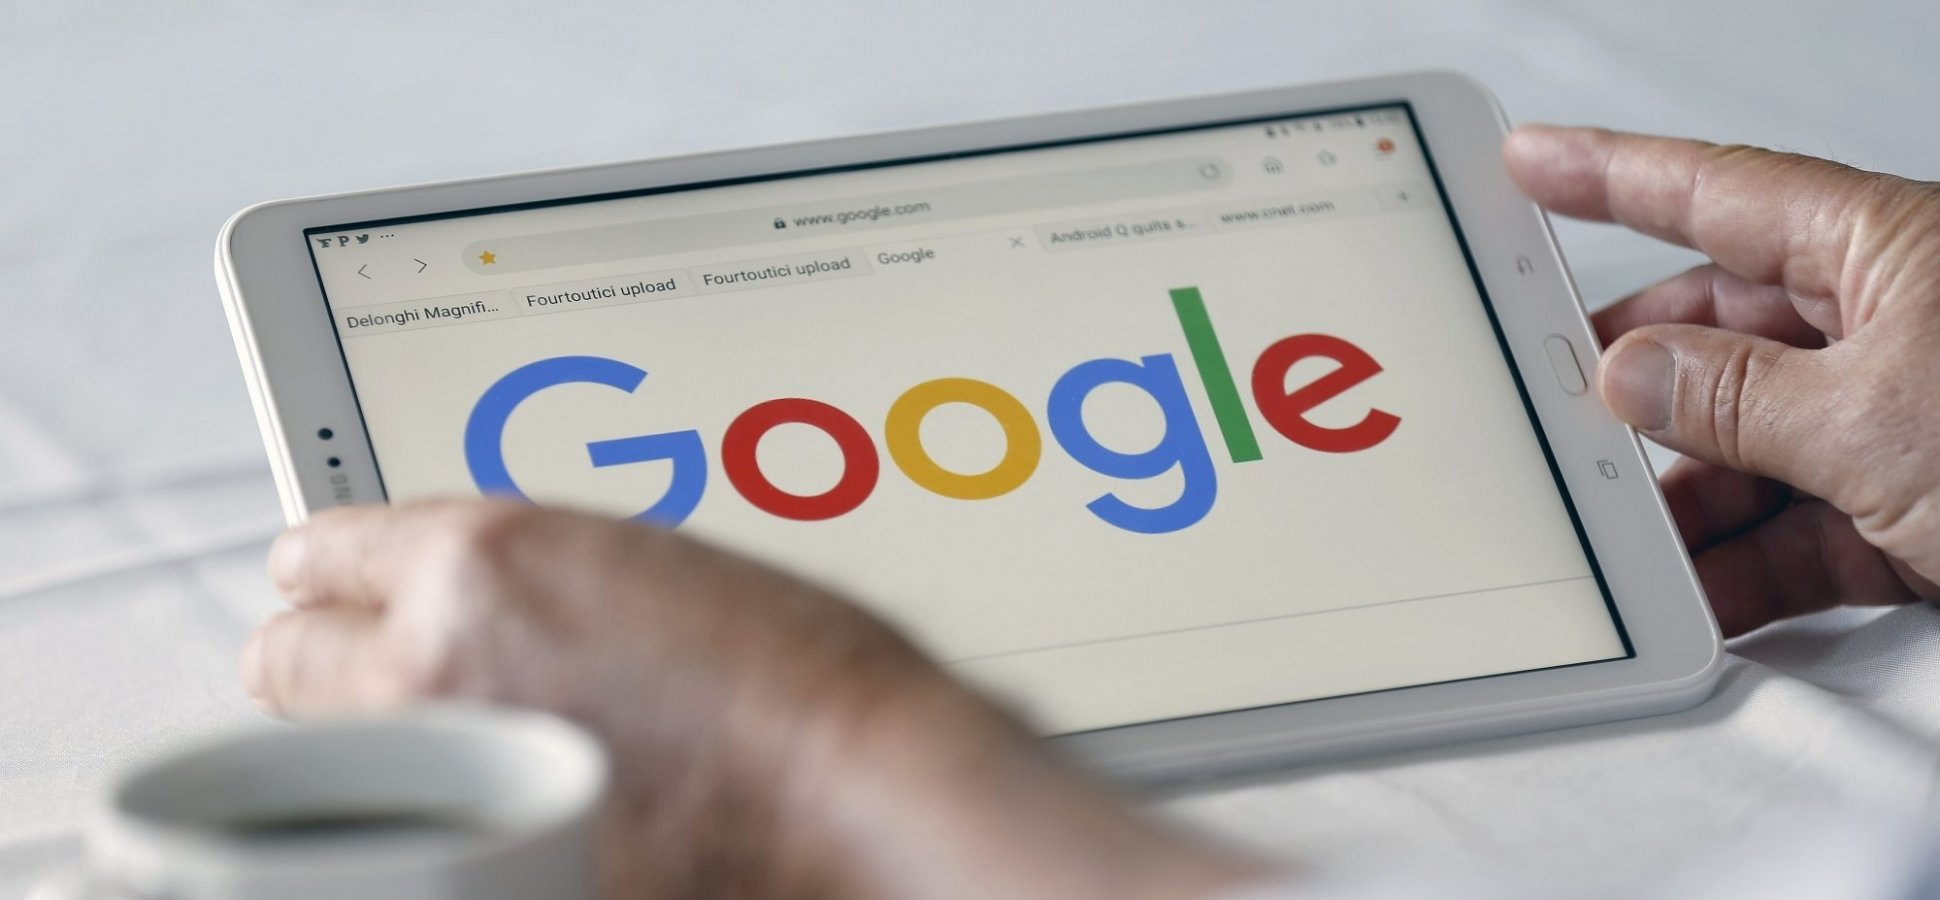 5 Web Search Tips From a Google Search Scientist